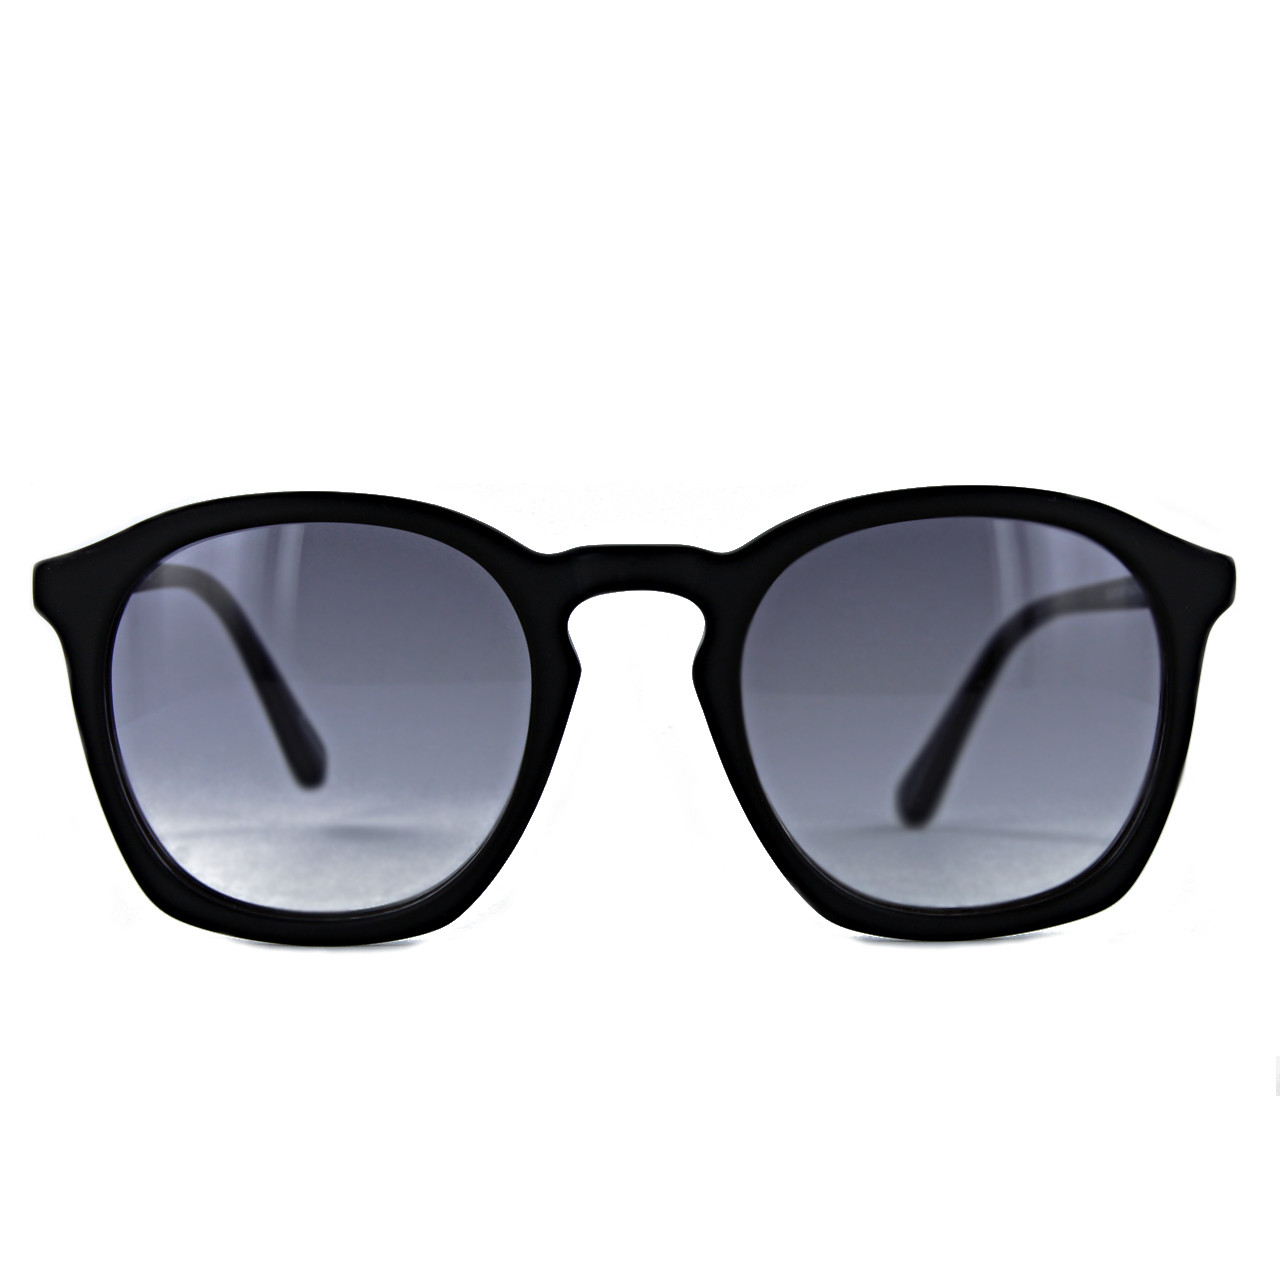 Rouq 4.0 Black Matt with Gradient Grey Lenses